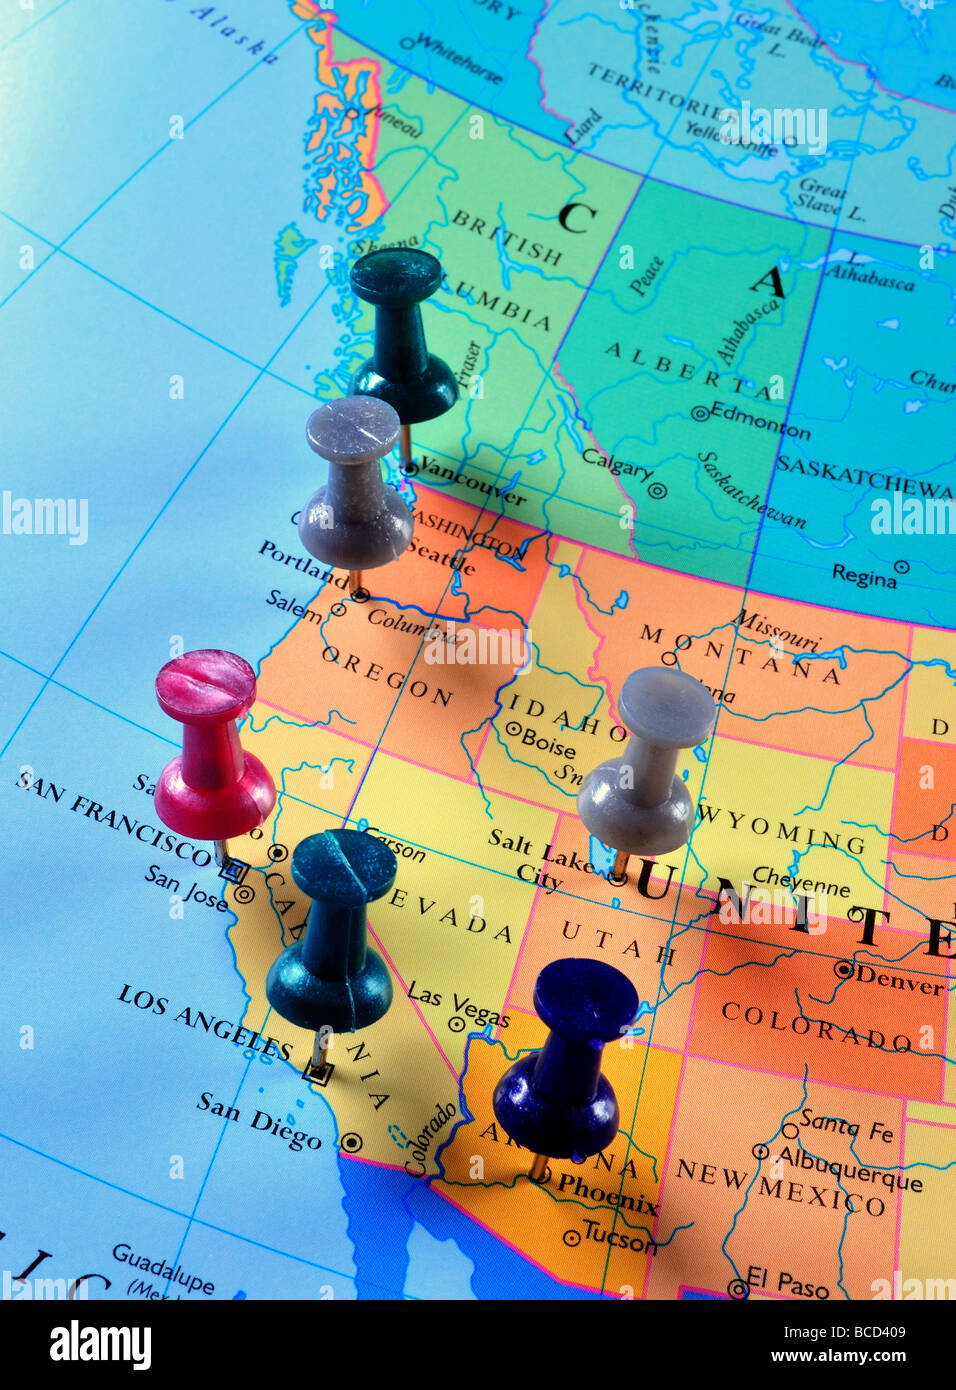 Map Of Western Us And Canada Map pins in Western United States & Canada Stock Photo   Alamy